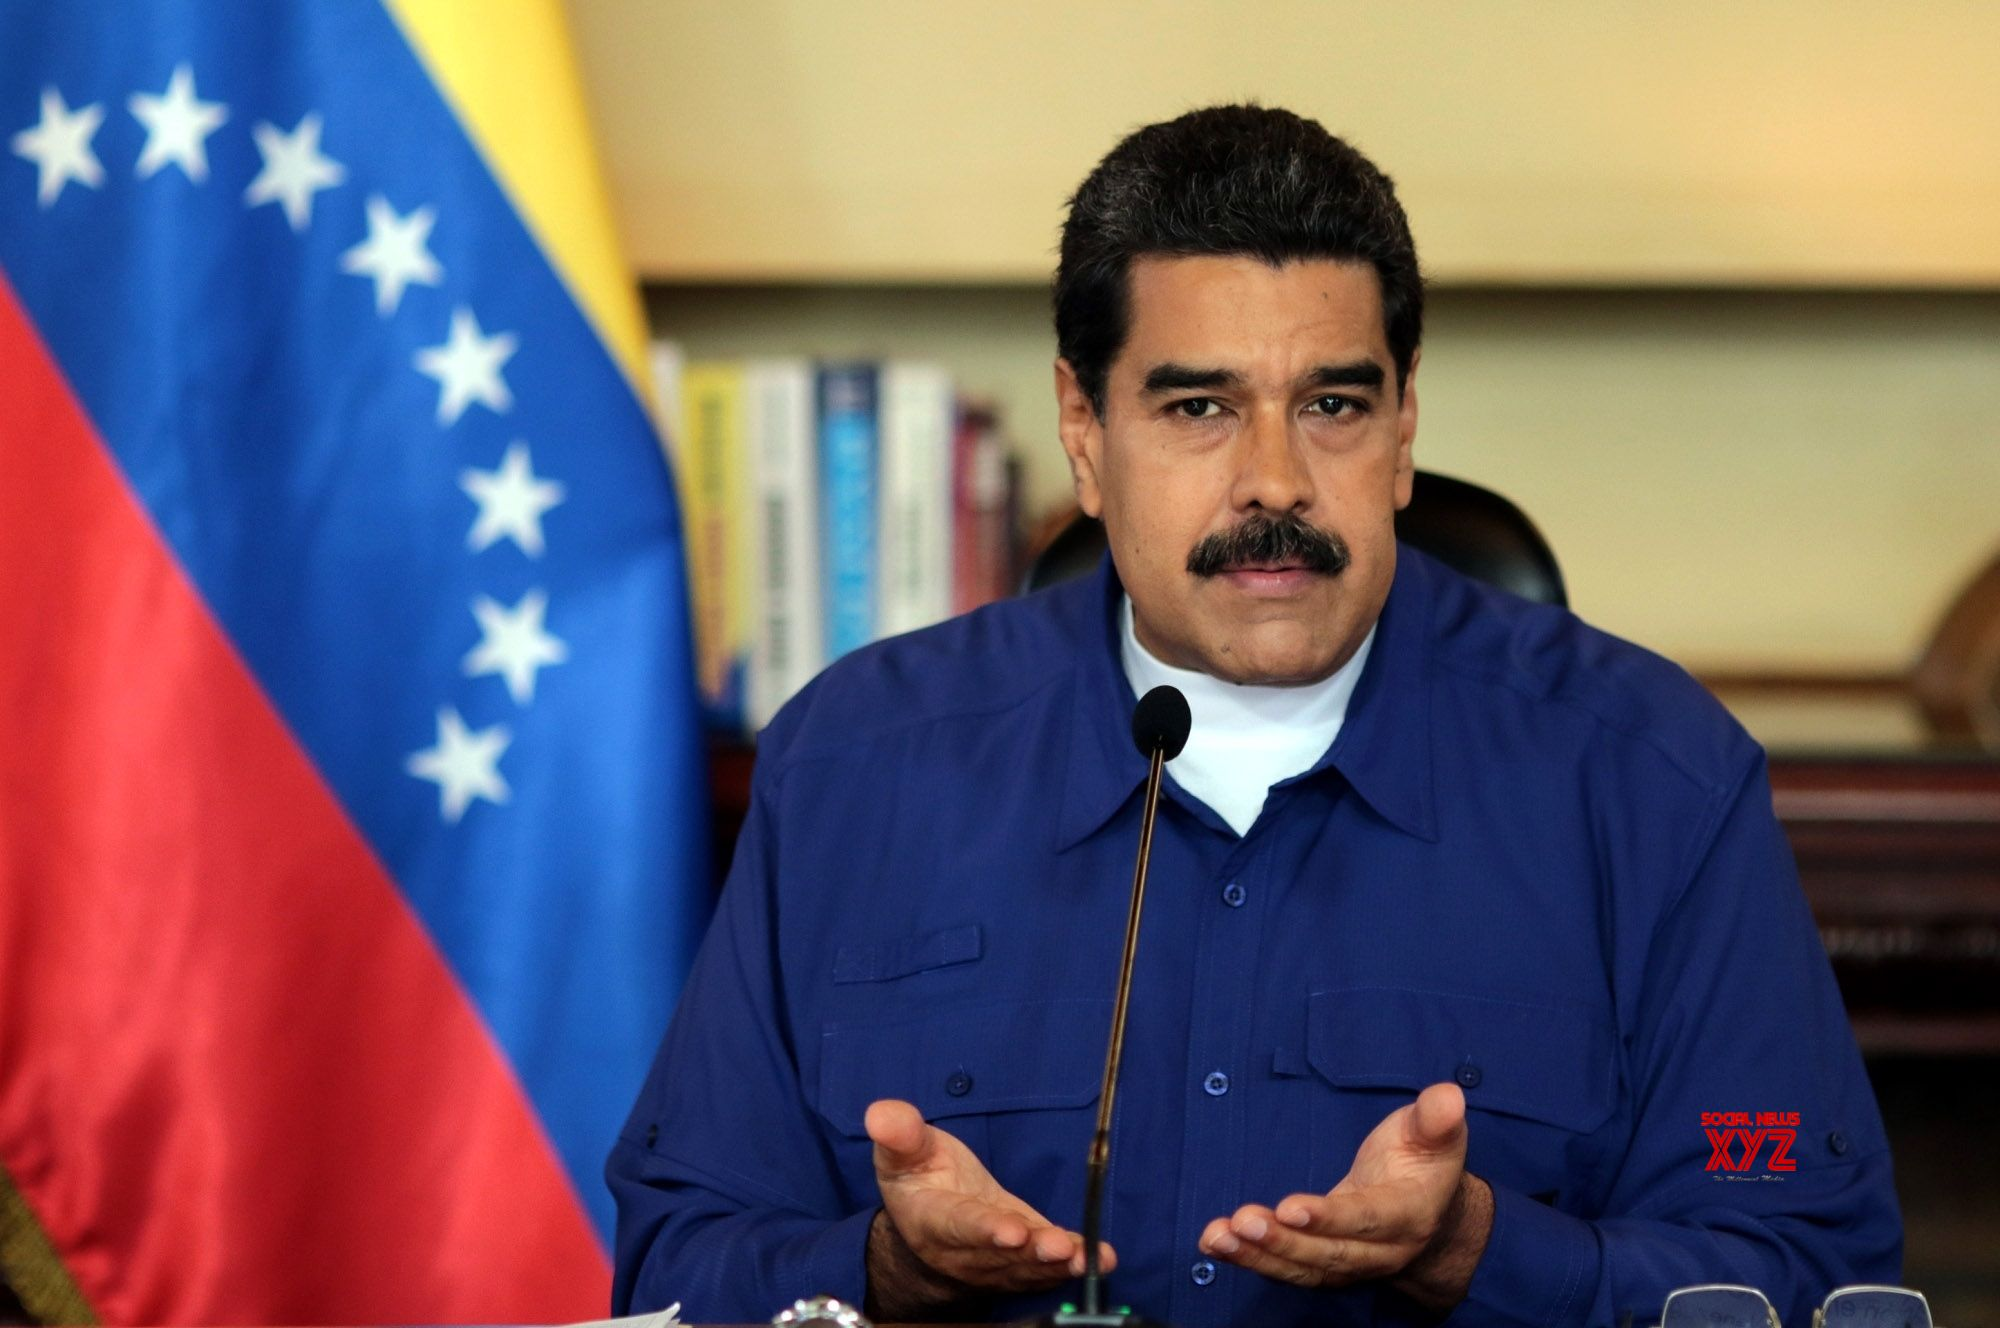 Venezuela slams European Union countries for aligning with U.S.